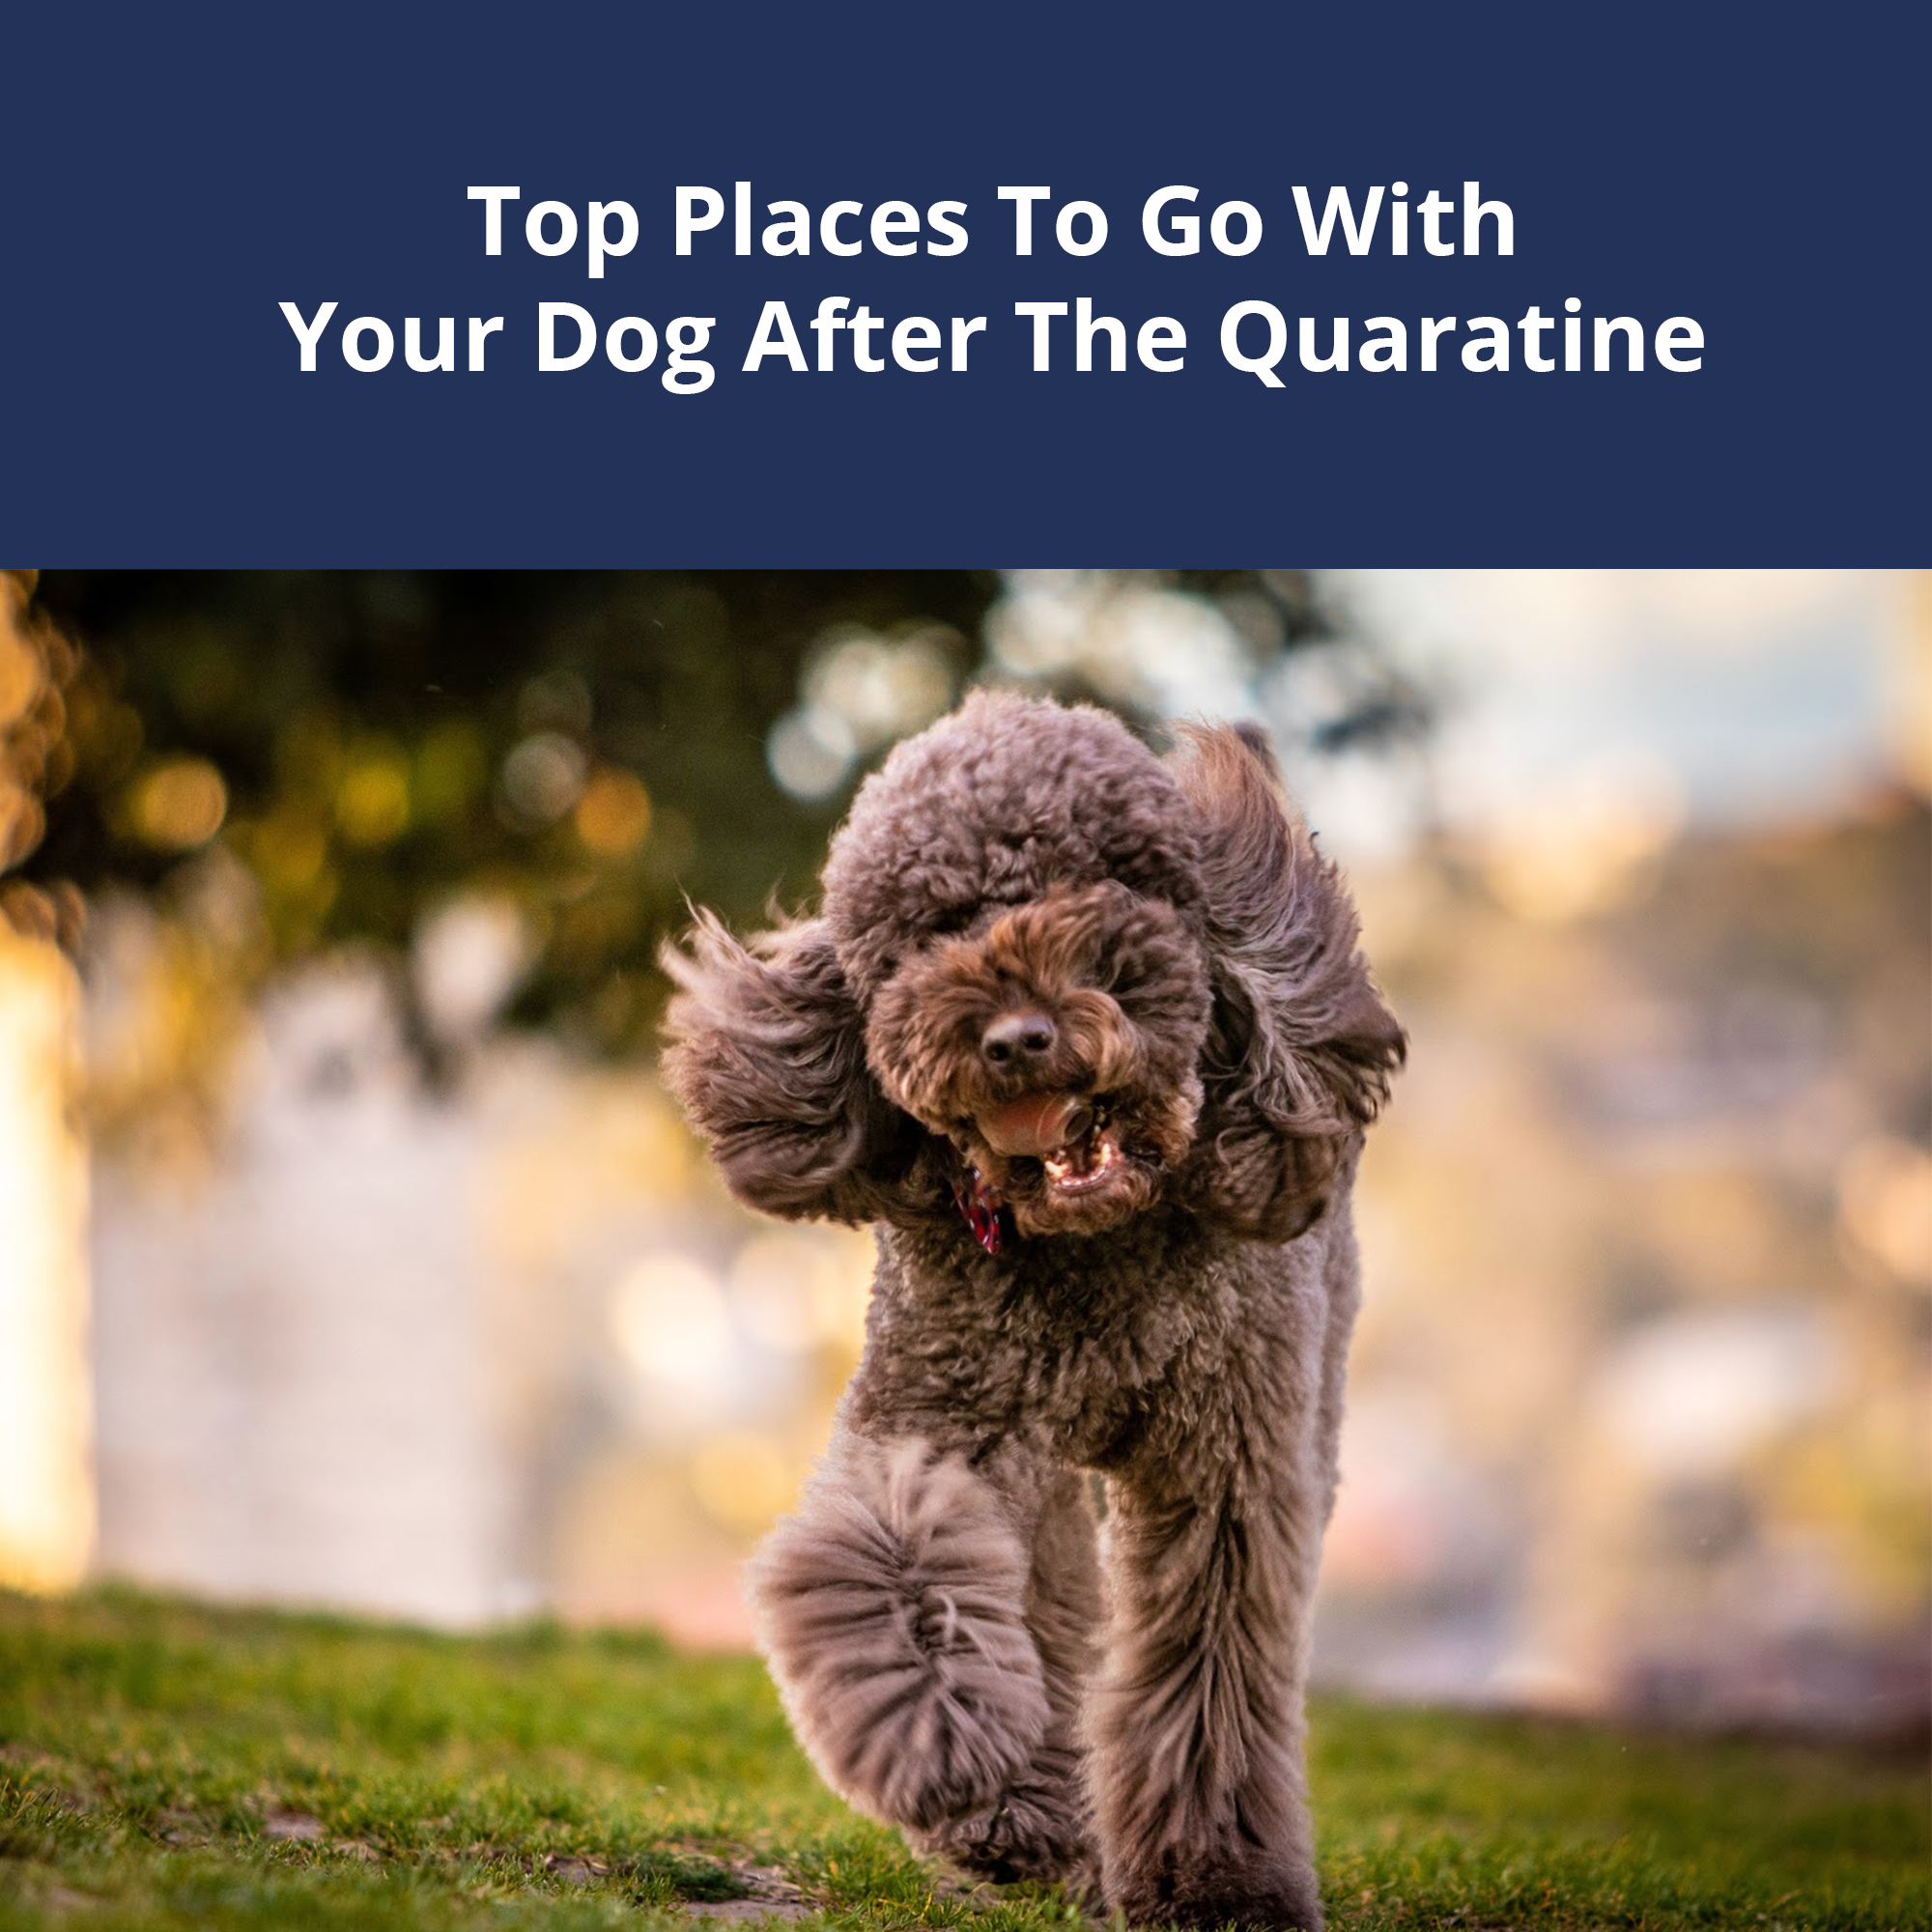 Top Places To Go With Your Dog After The Quarantine